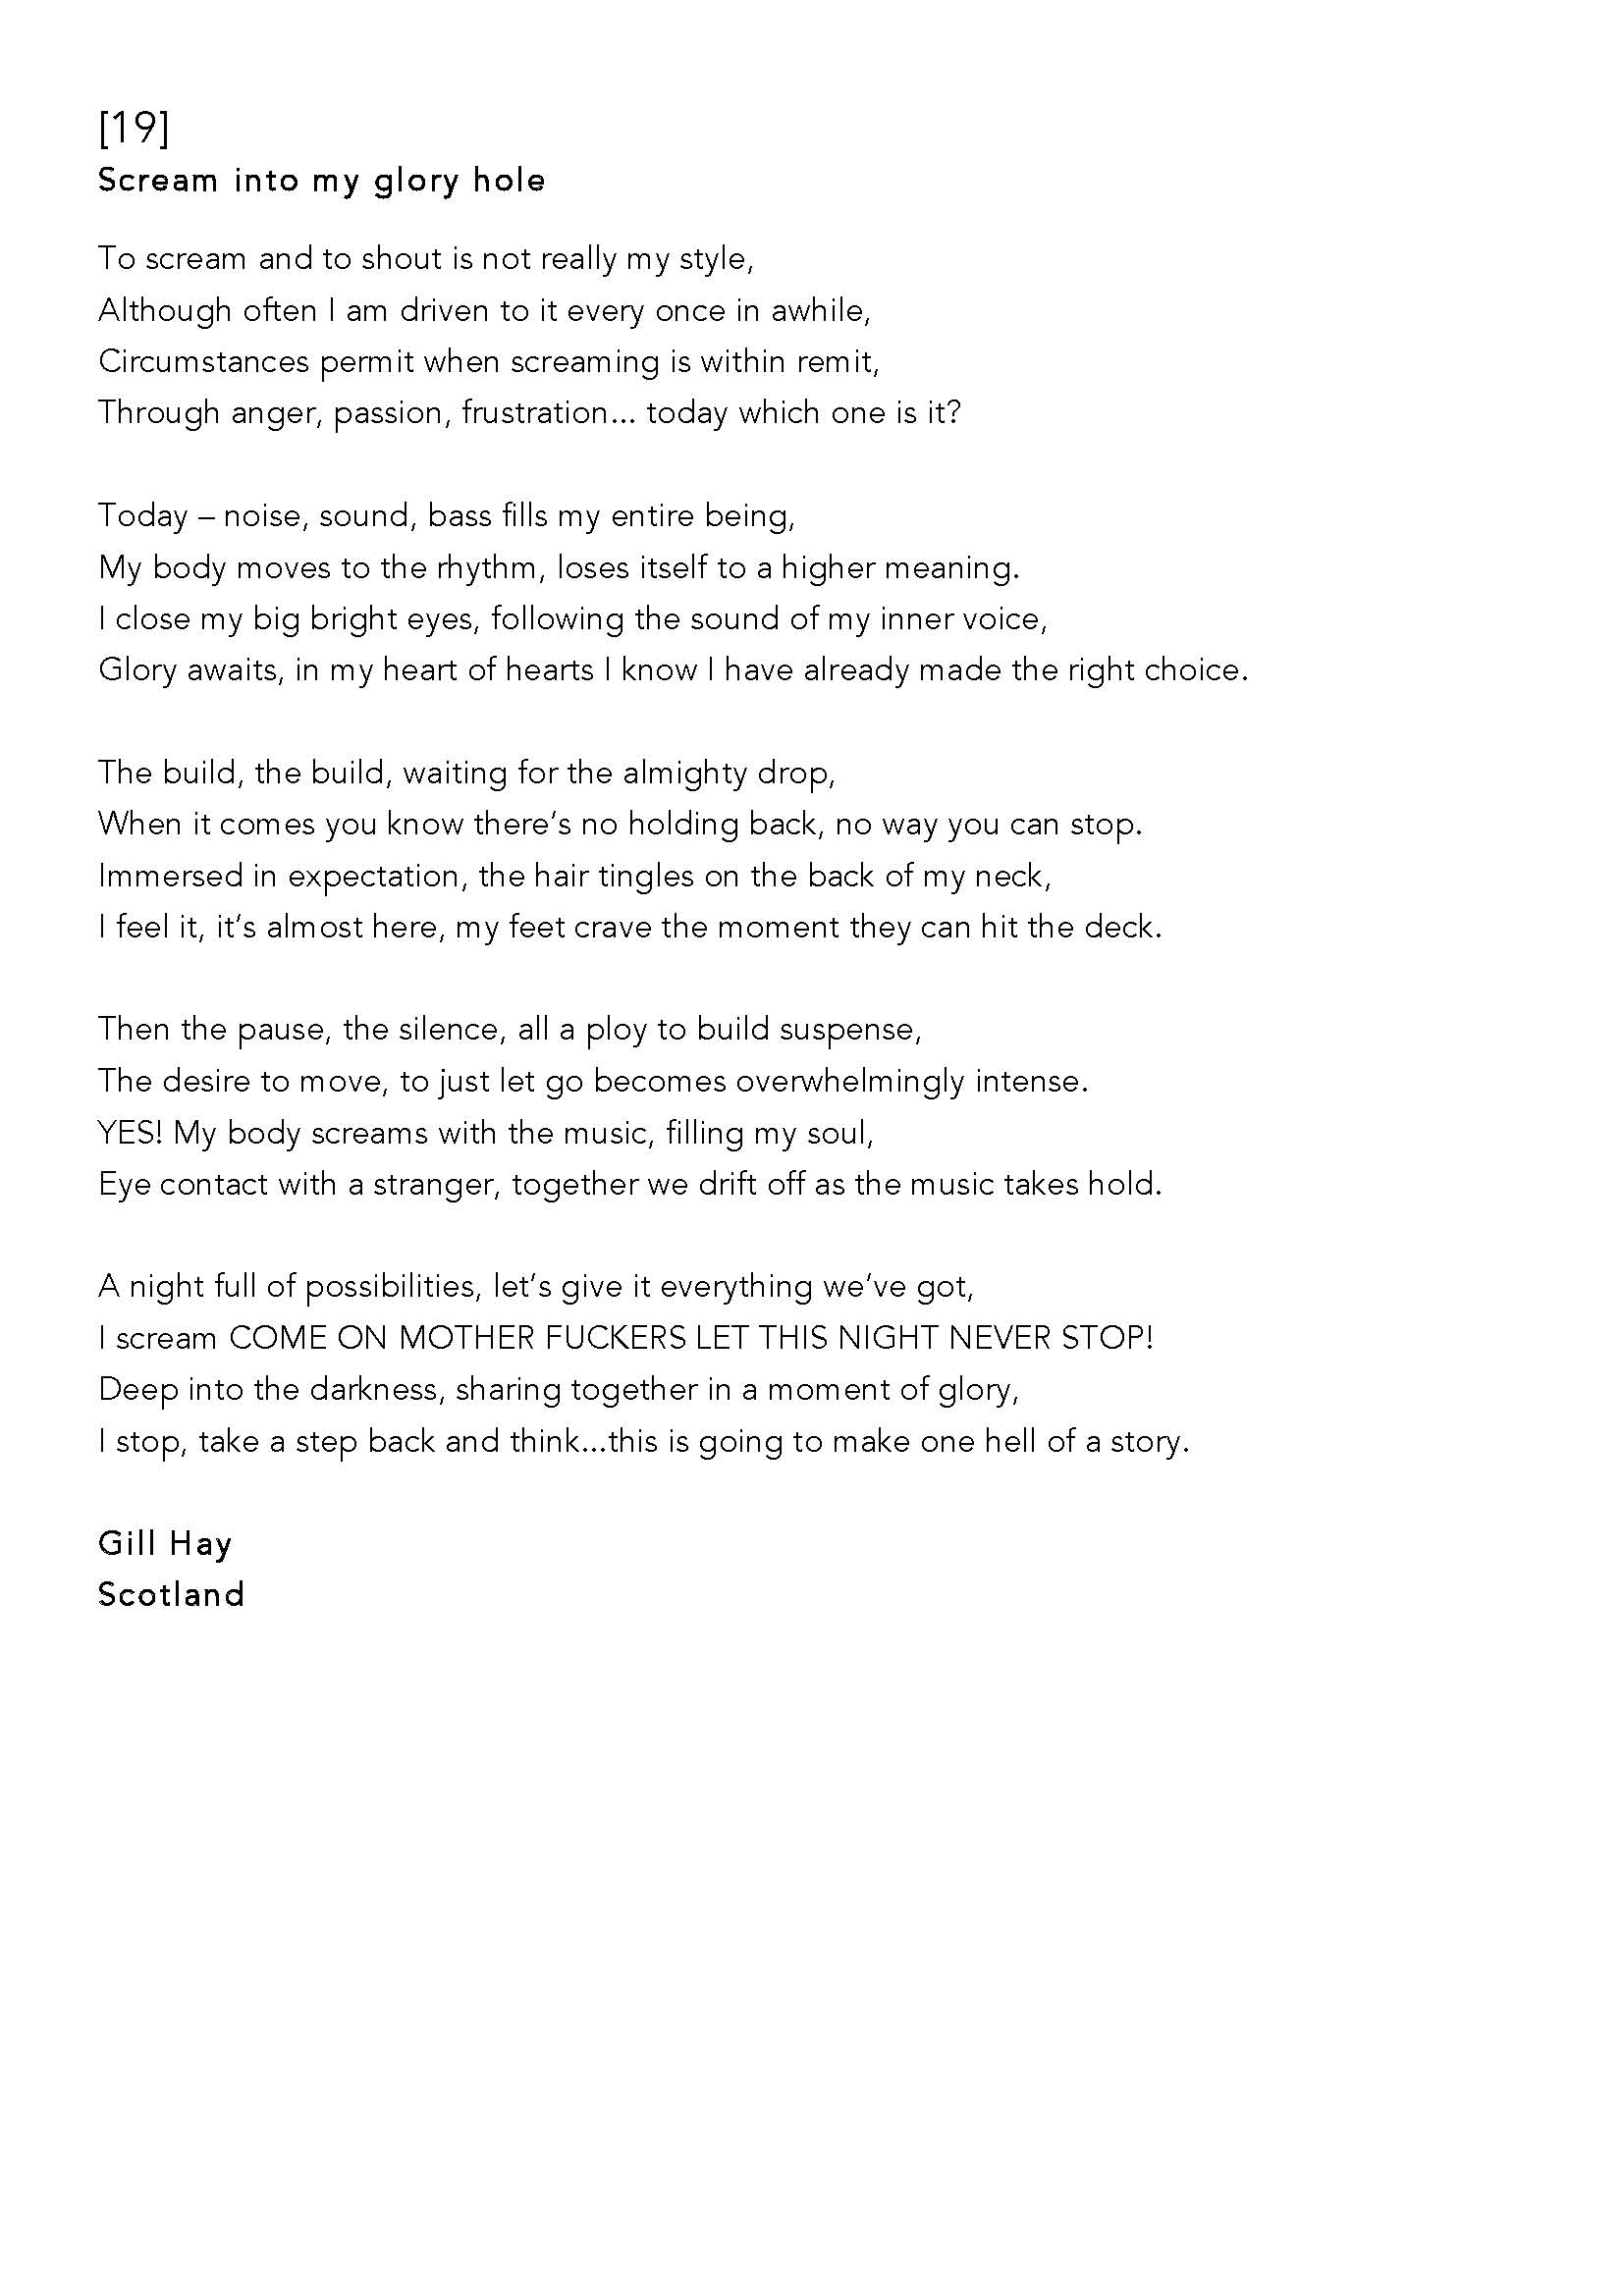 Poetry Collection - Everyone can Poetry _ For 12 May 2014 - R2_Page_19.jpg